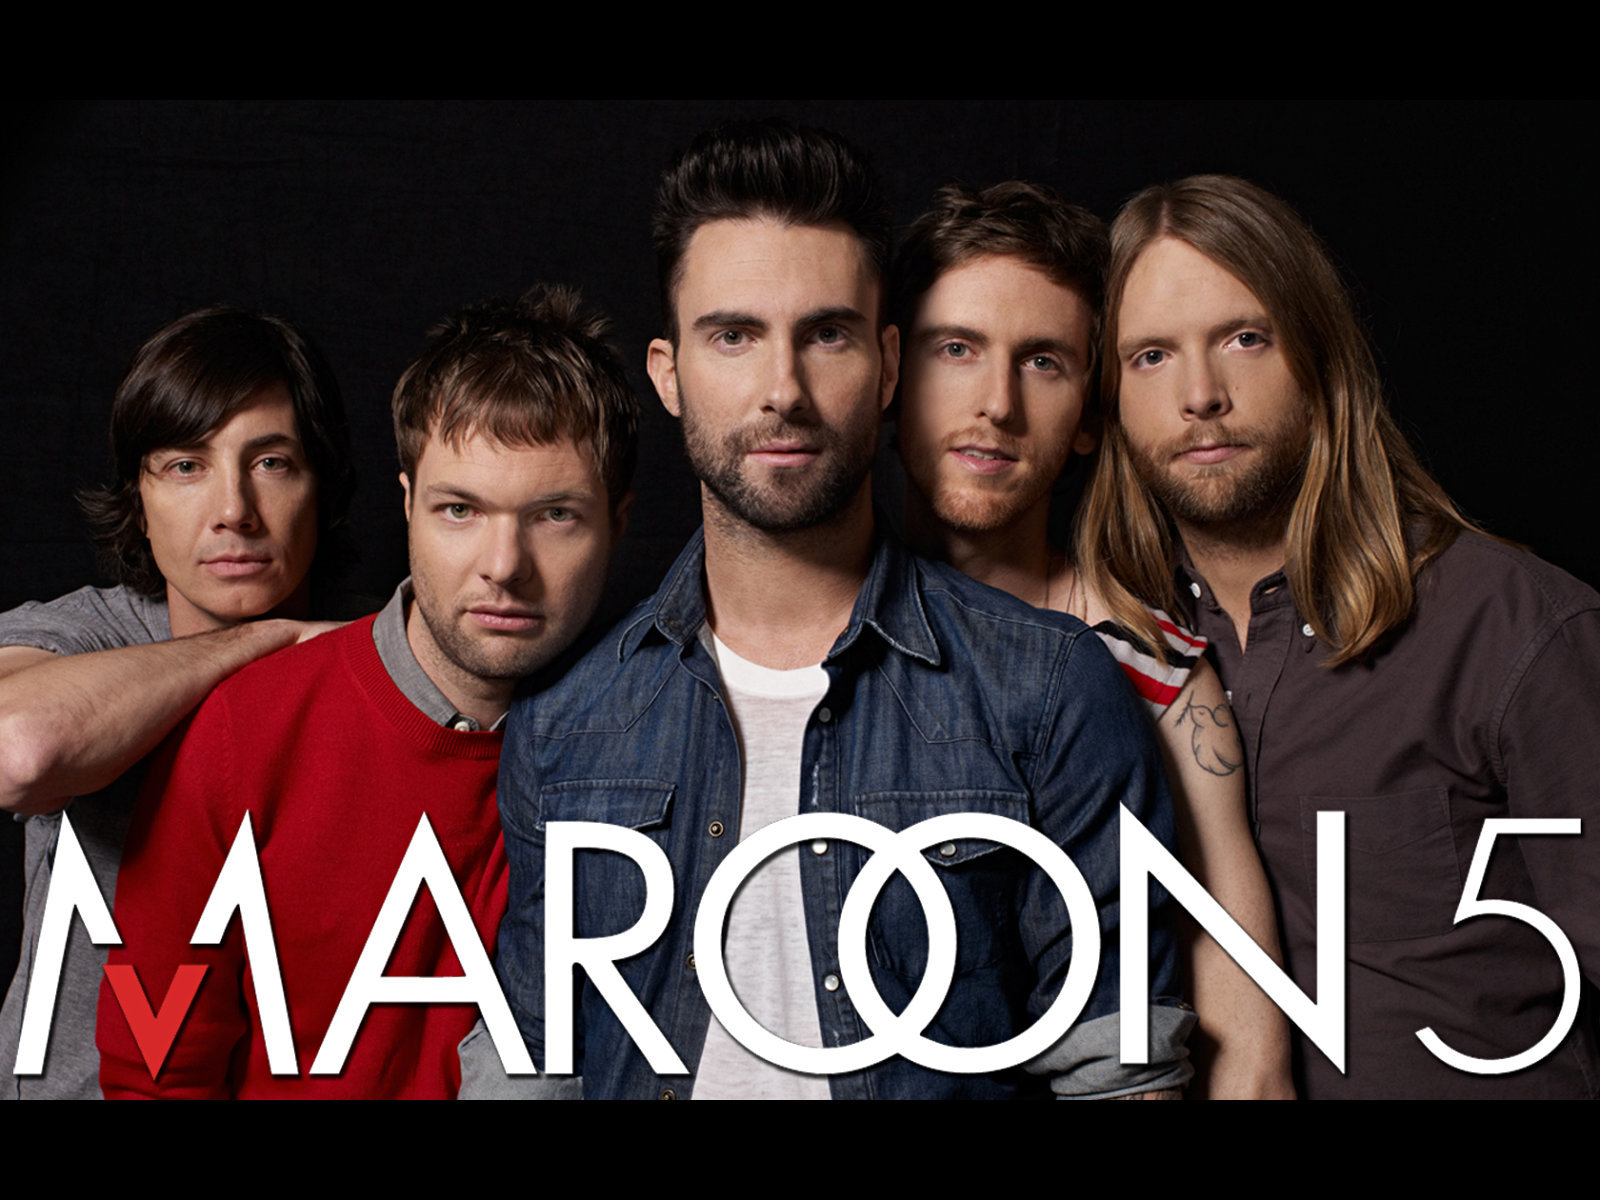 MAROON 5  - MAPS (Music Video)